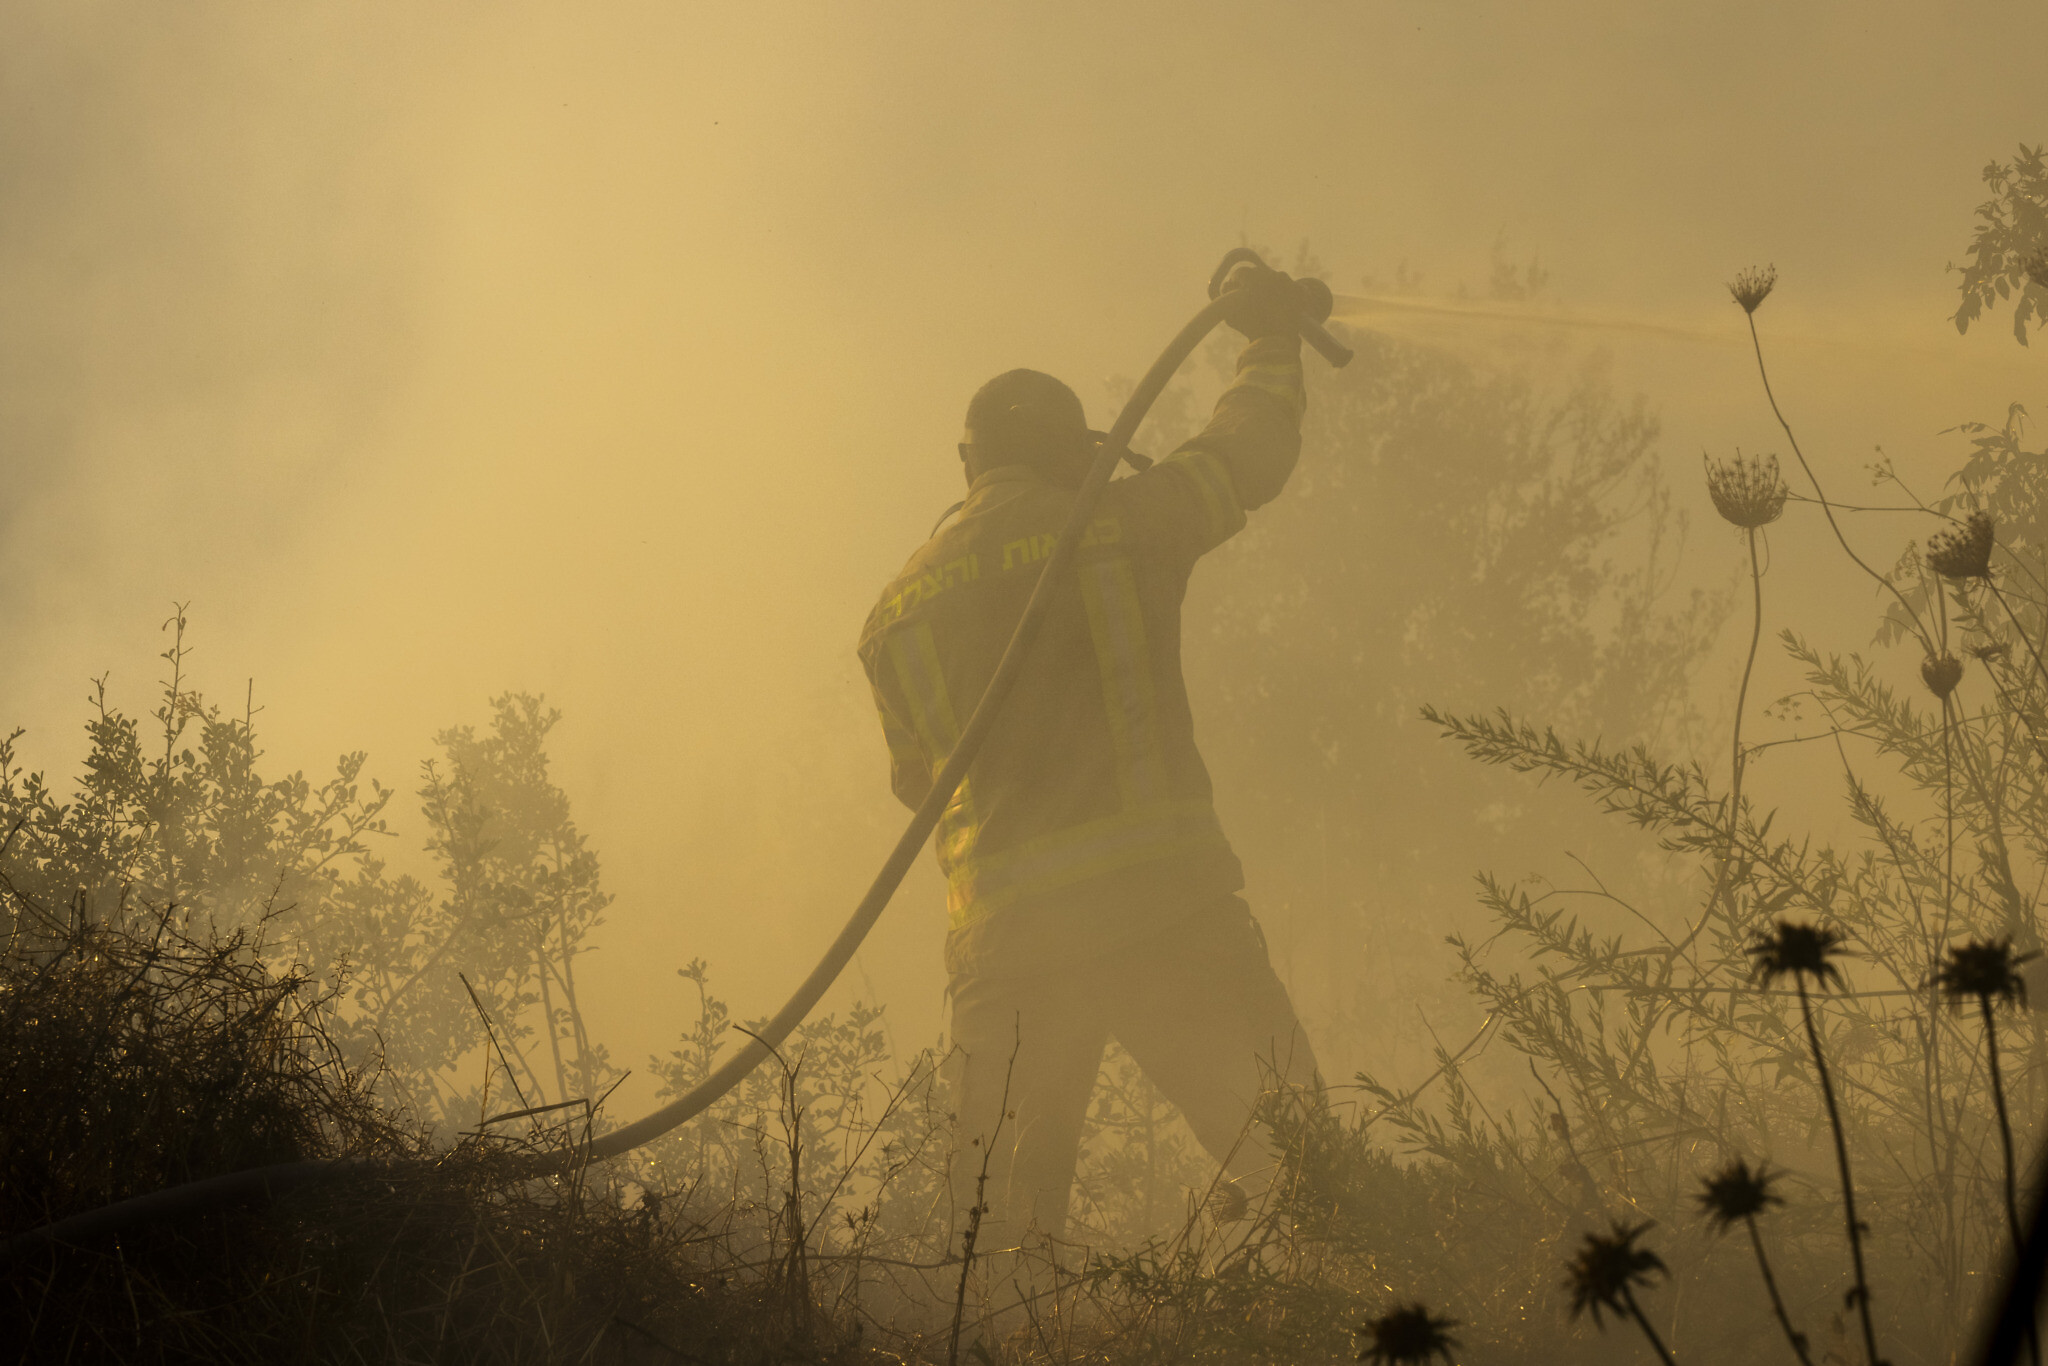 Firefighters try to extinguish a fire near Givat Ye'arim, near Jerusalem, August 16, 2021. (Olivier Fitoussi/Flash90)